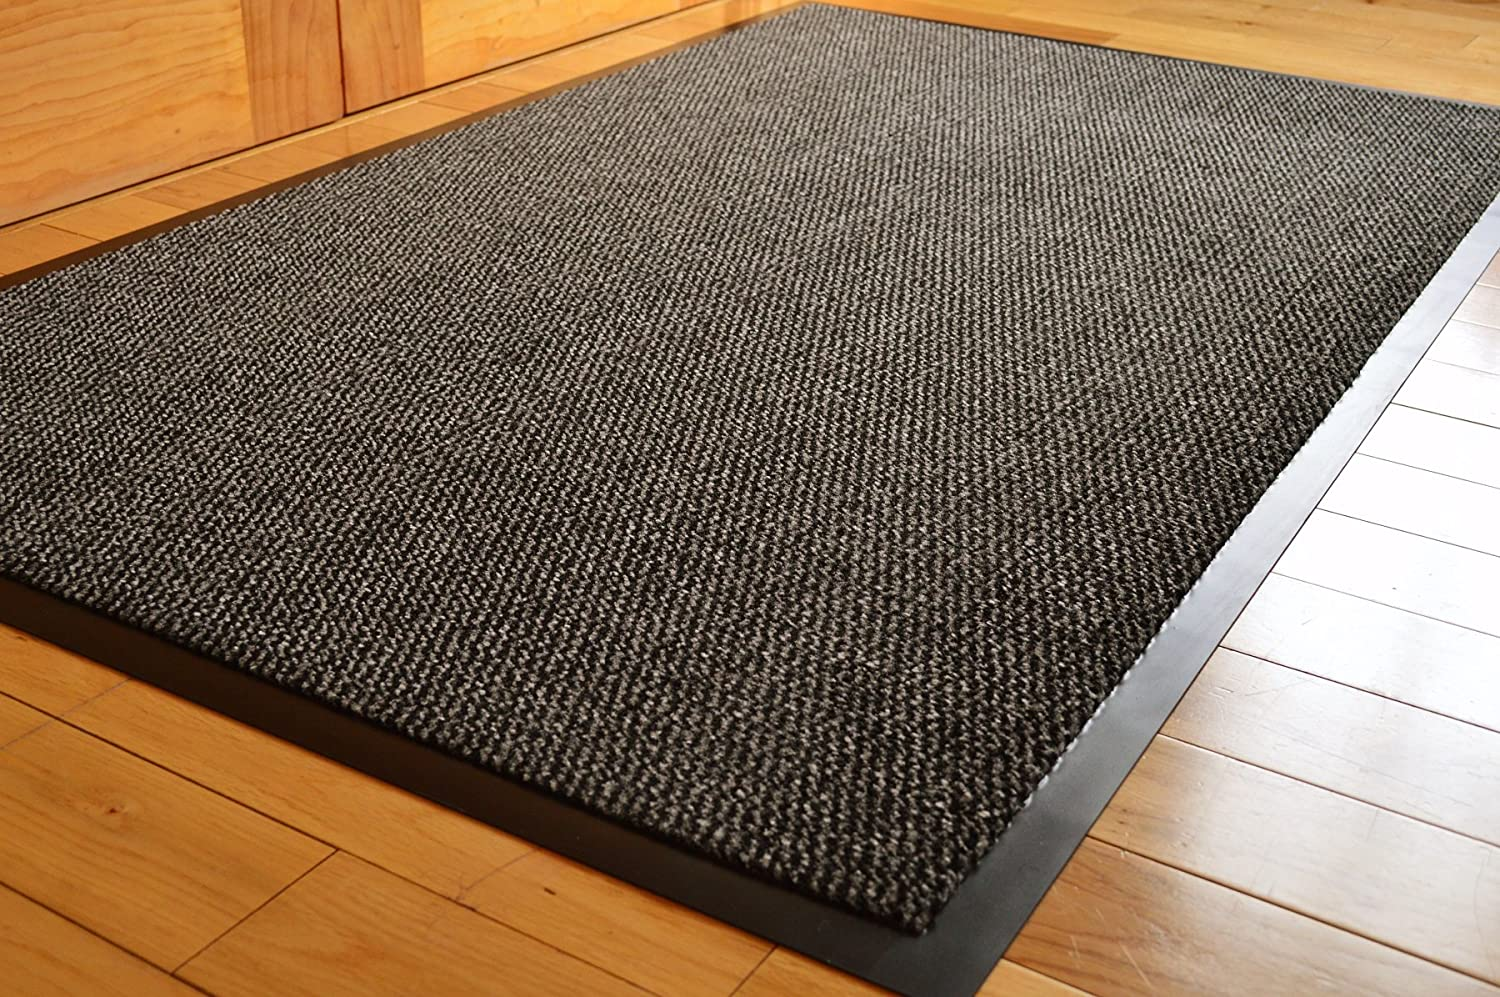 TrendMakers Barrier Mats Heavy Quality Non Slip Hard Wearing Barrier Mat. PVC Edged Heavy Duty Kitchen Mat Rug Available in 8 sizes (90cm x 150cm)-GREY ... : mat door - pezcame.com